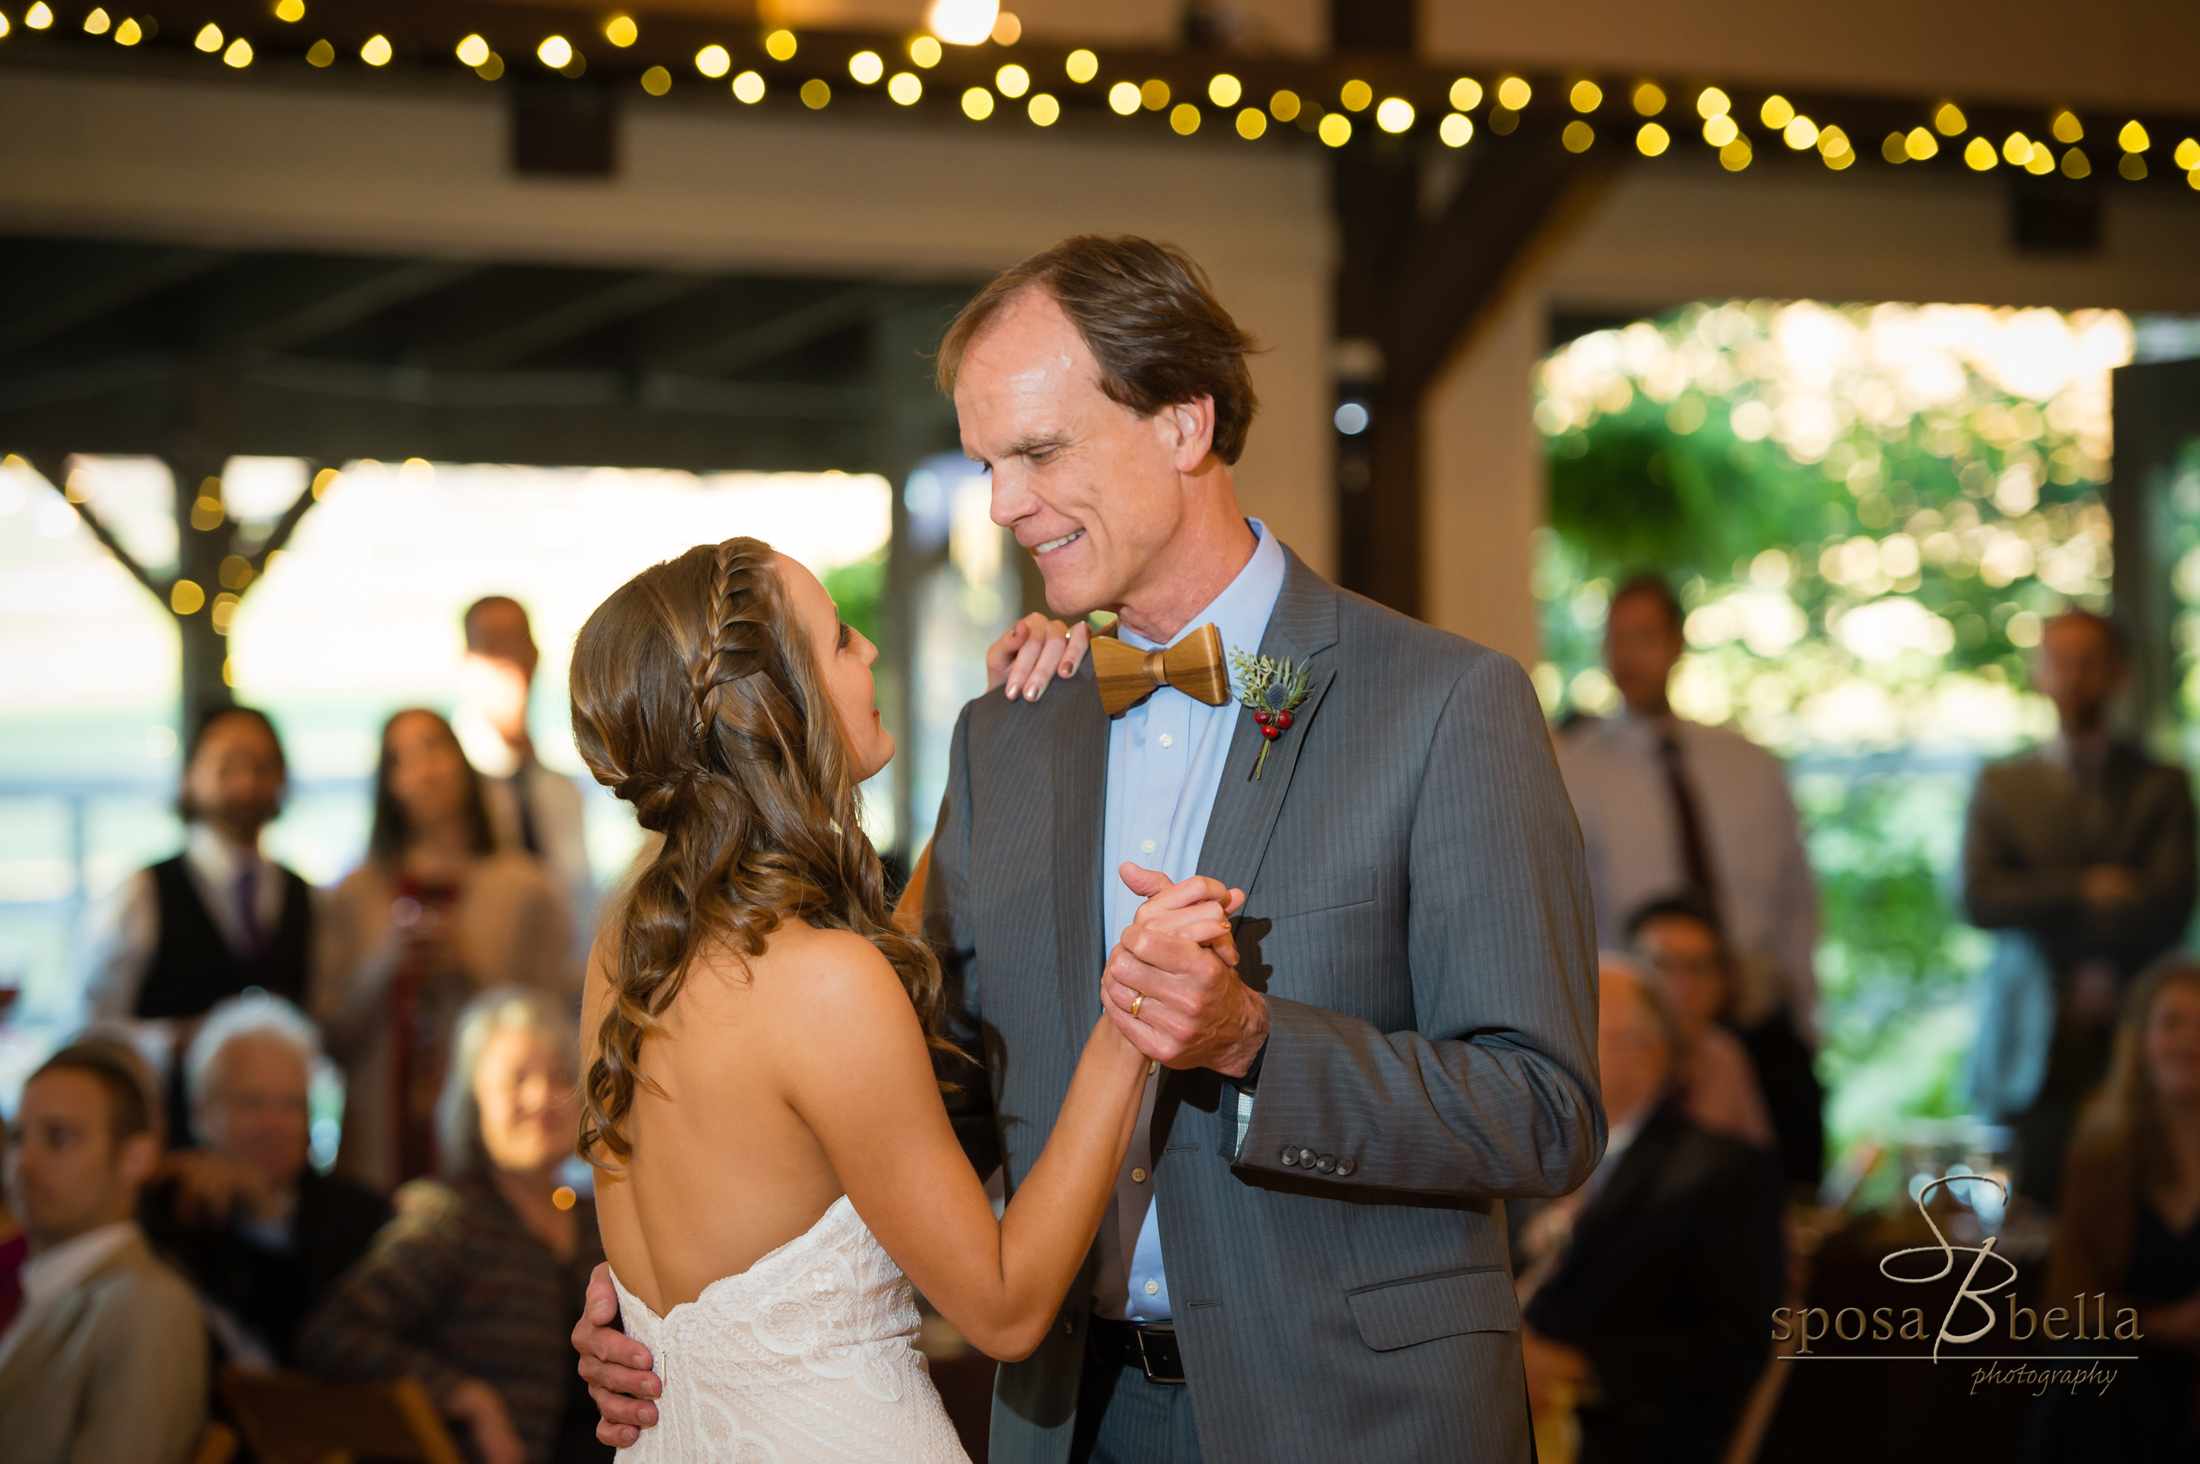 """All My Life"" by the Beatles is a perfect track for a Father/Daughter dance."